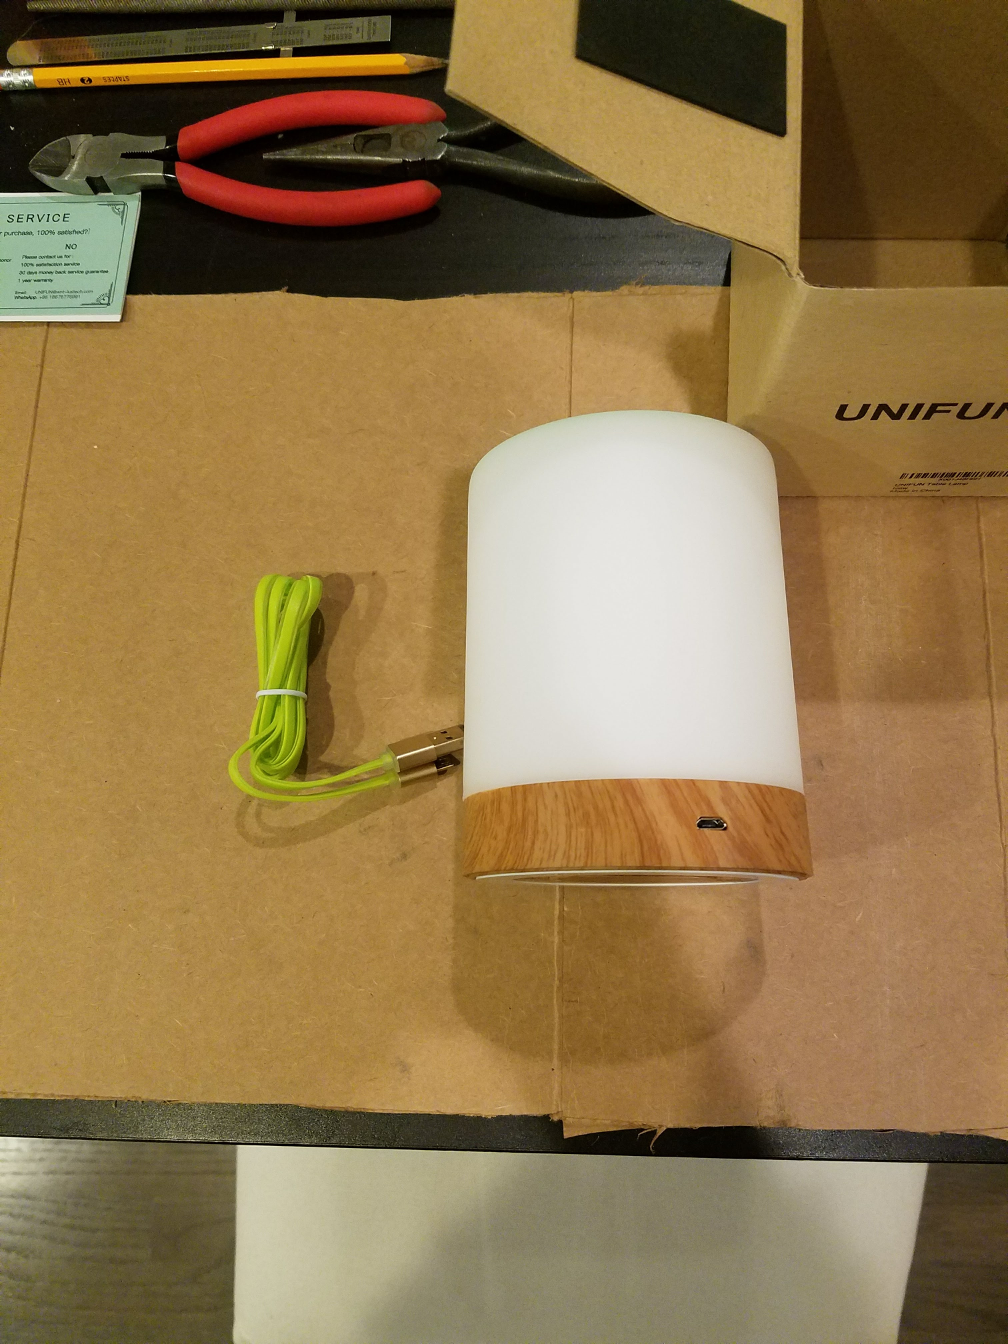 Unifun Touch Lamp contents